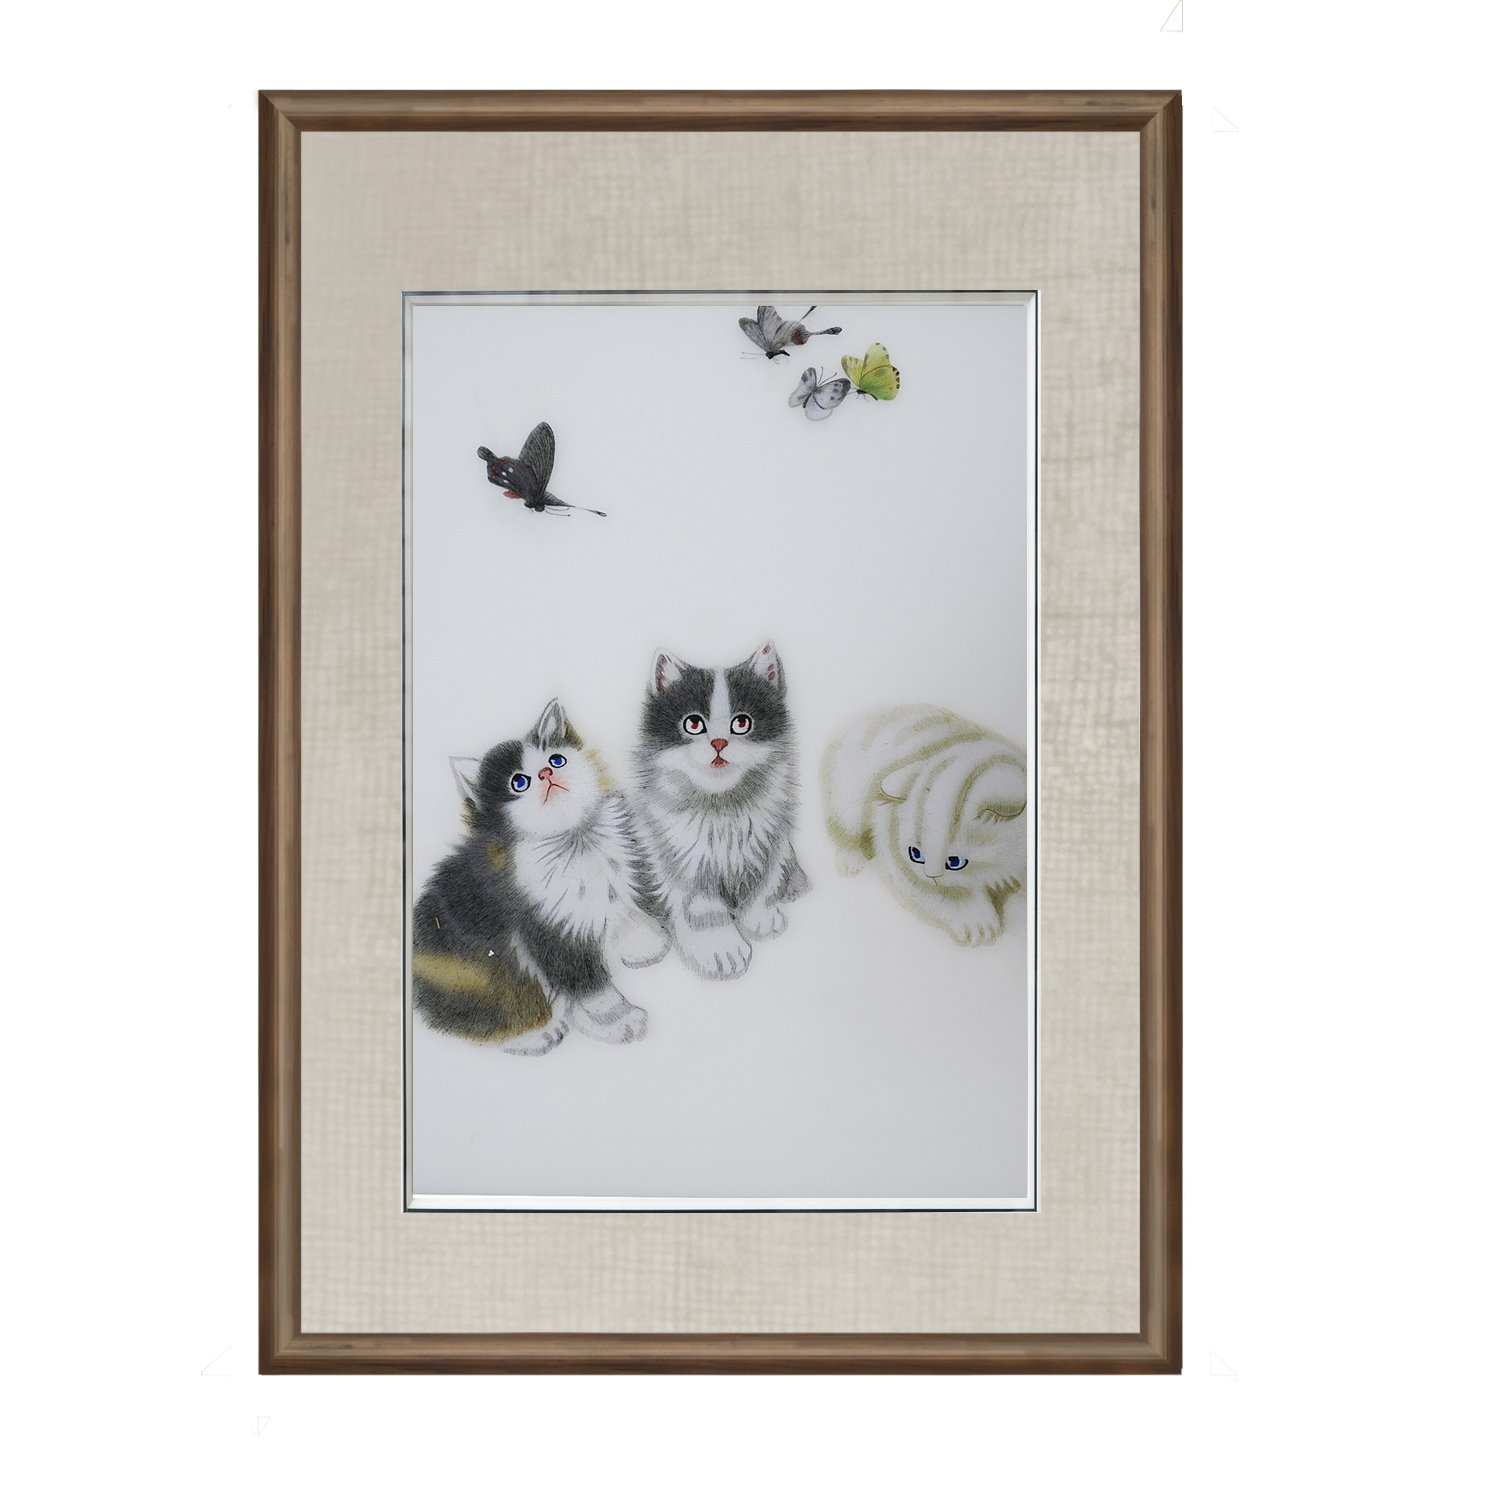 Vivi min 100% Handmade Embroidery Chinese ink painting Framed (Three kittens play with butterflies)Hanging Wall Decoration Souvenir Fashion collectible Gift